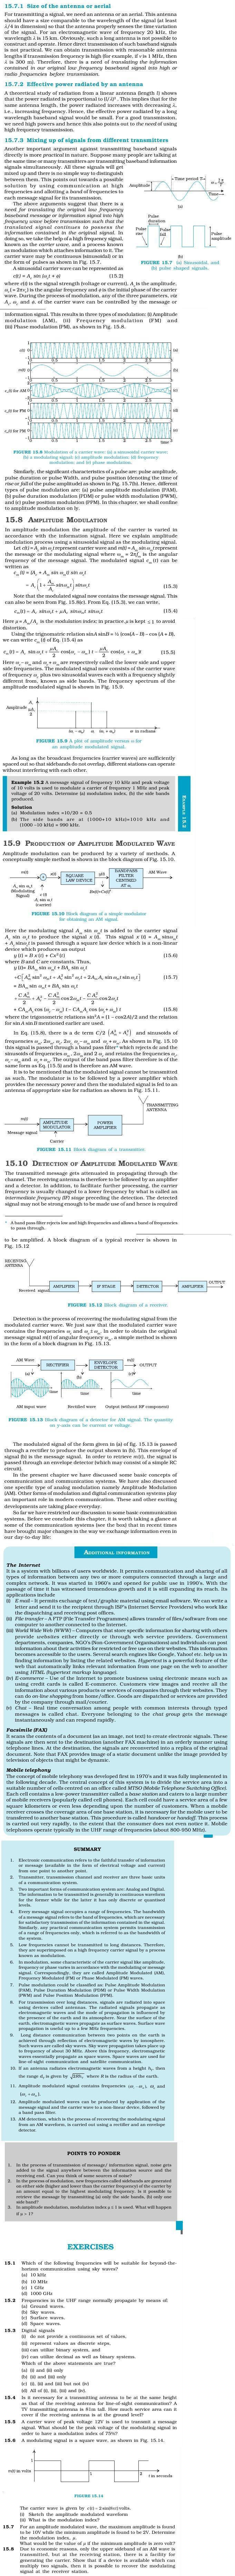 NCERT Class XII Physics Chapter 15 - Communication Systems